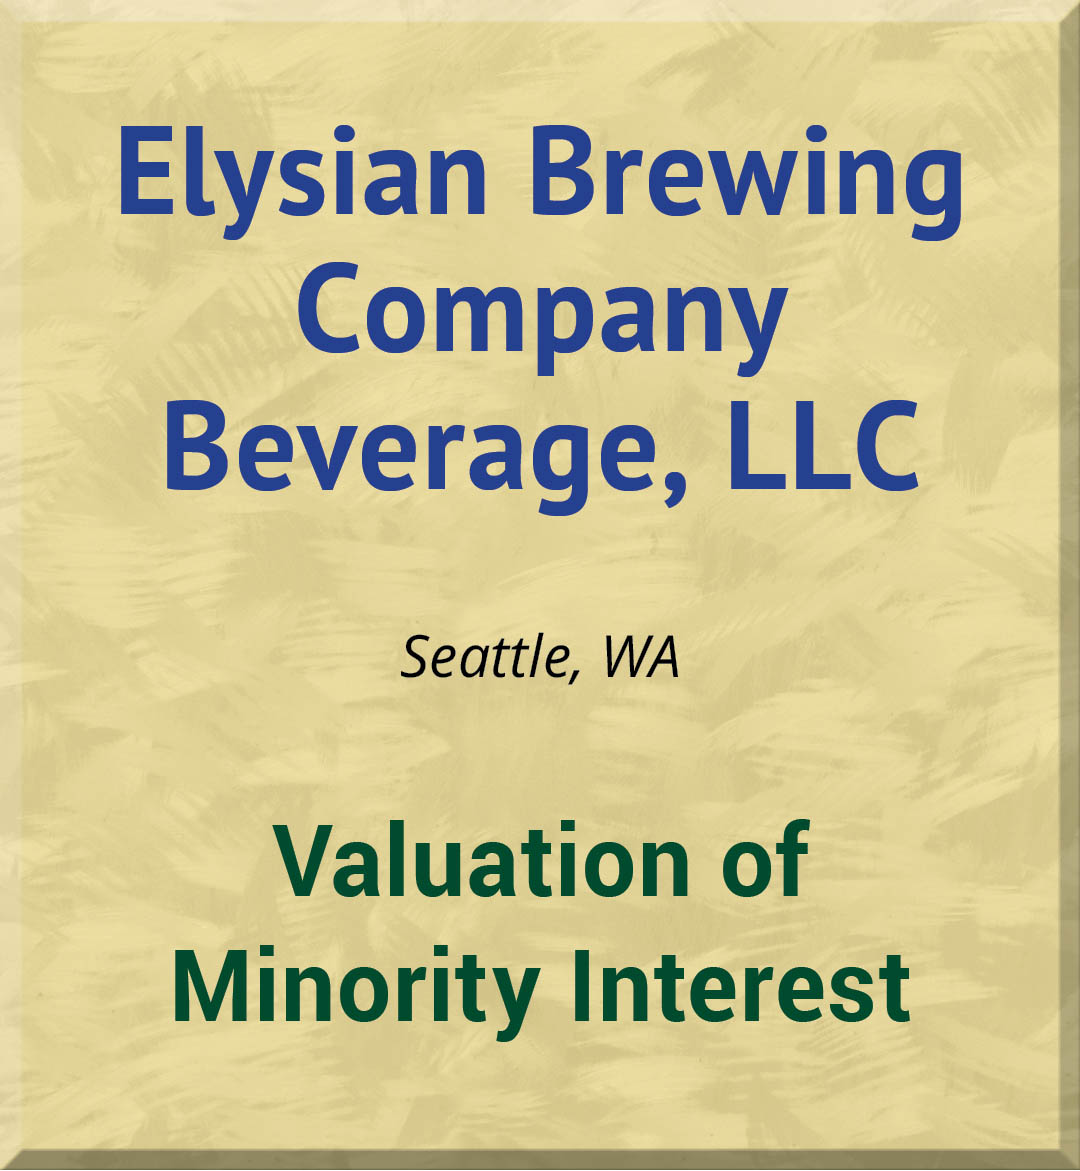 Elysian Brewing Company Beverage, LLC